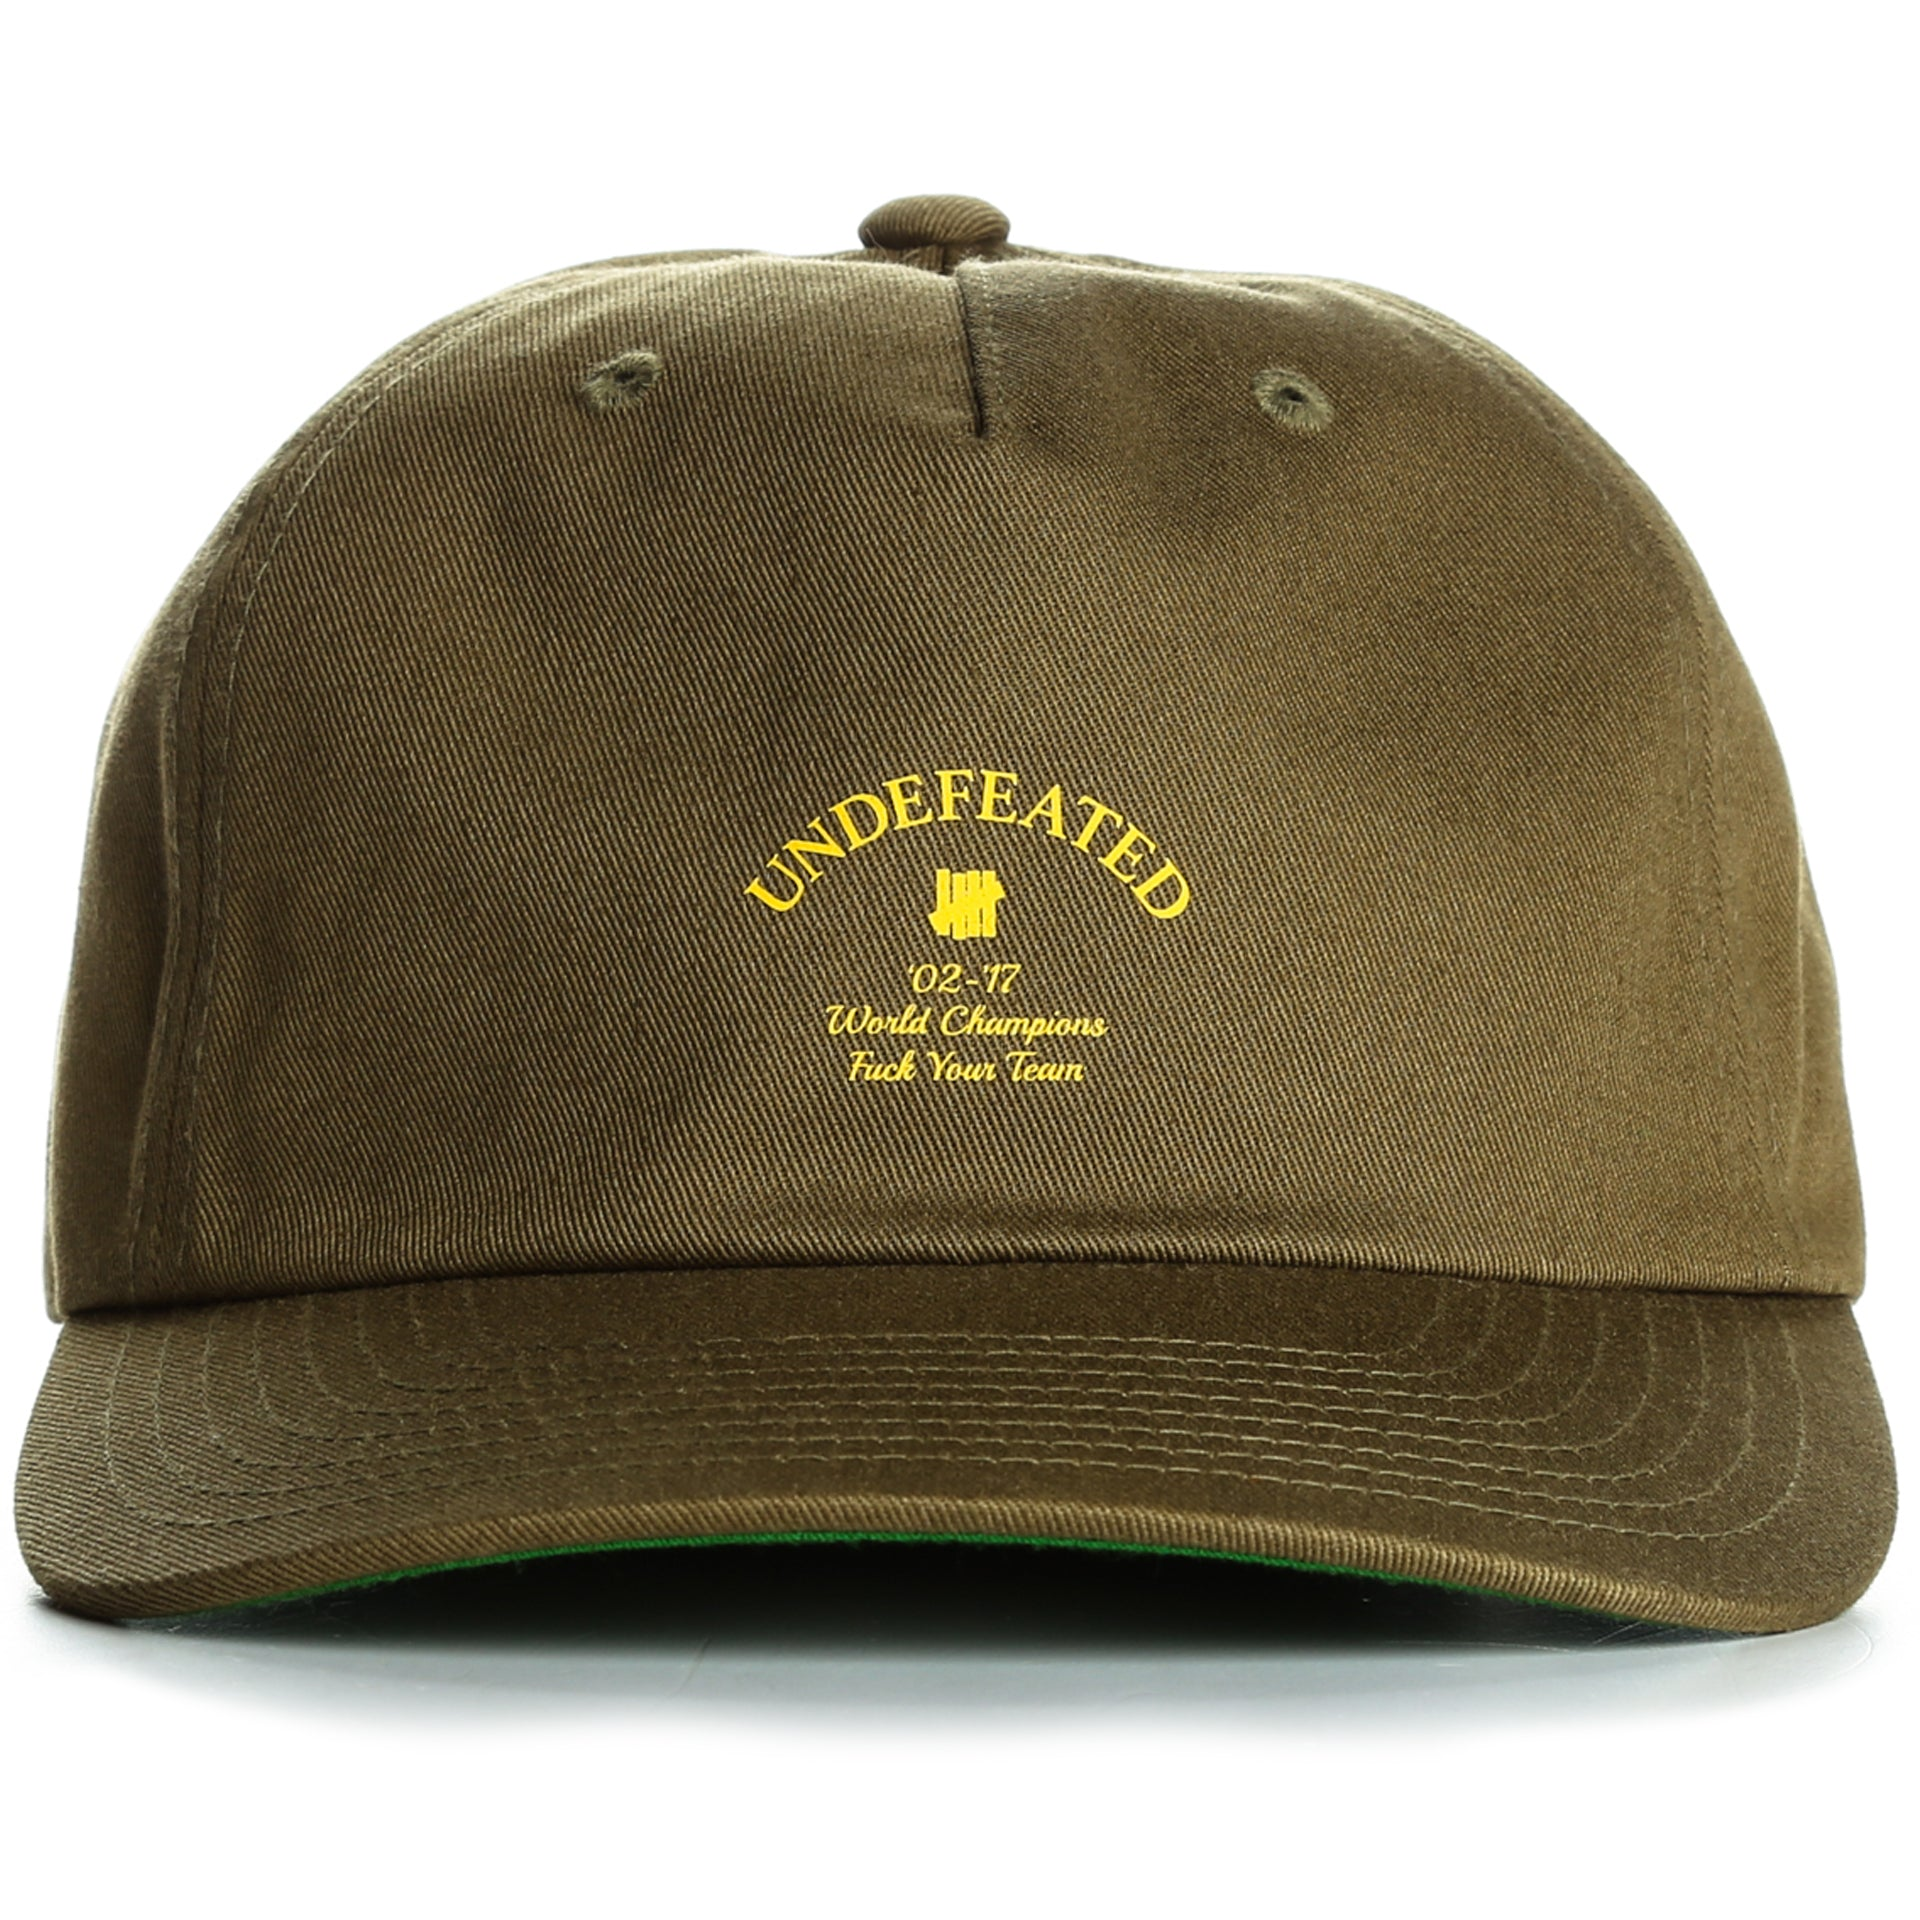 0aefdc255e3 Men s Hats Tagged